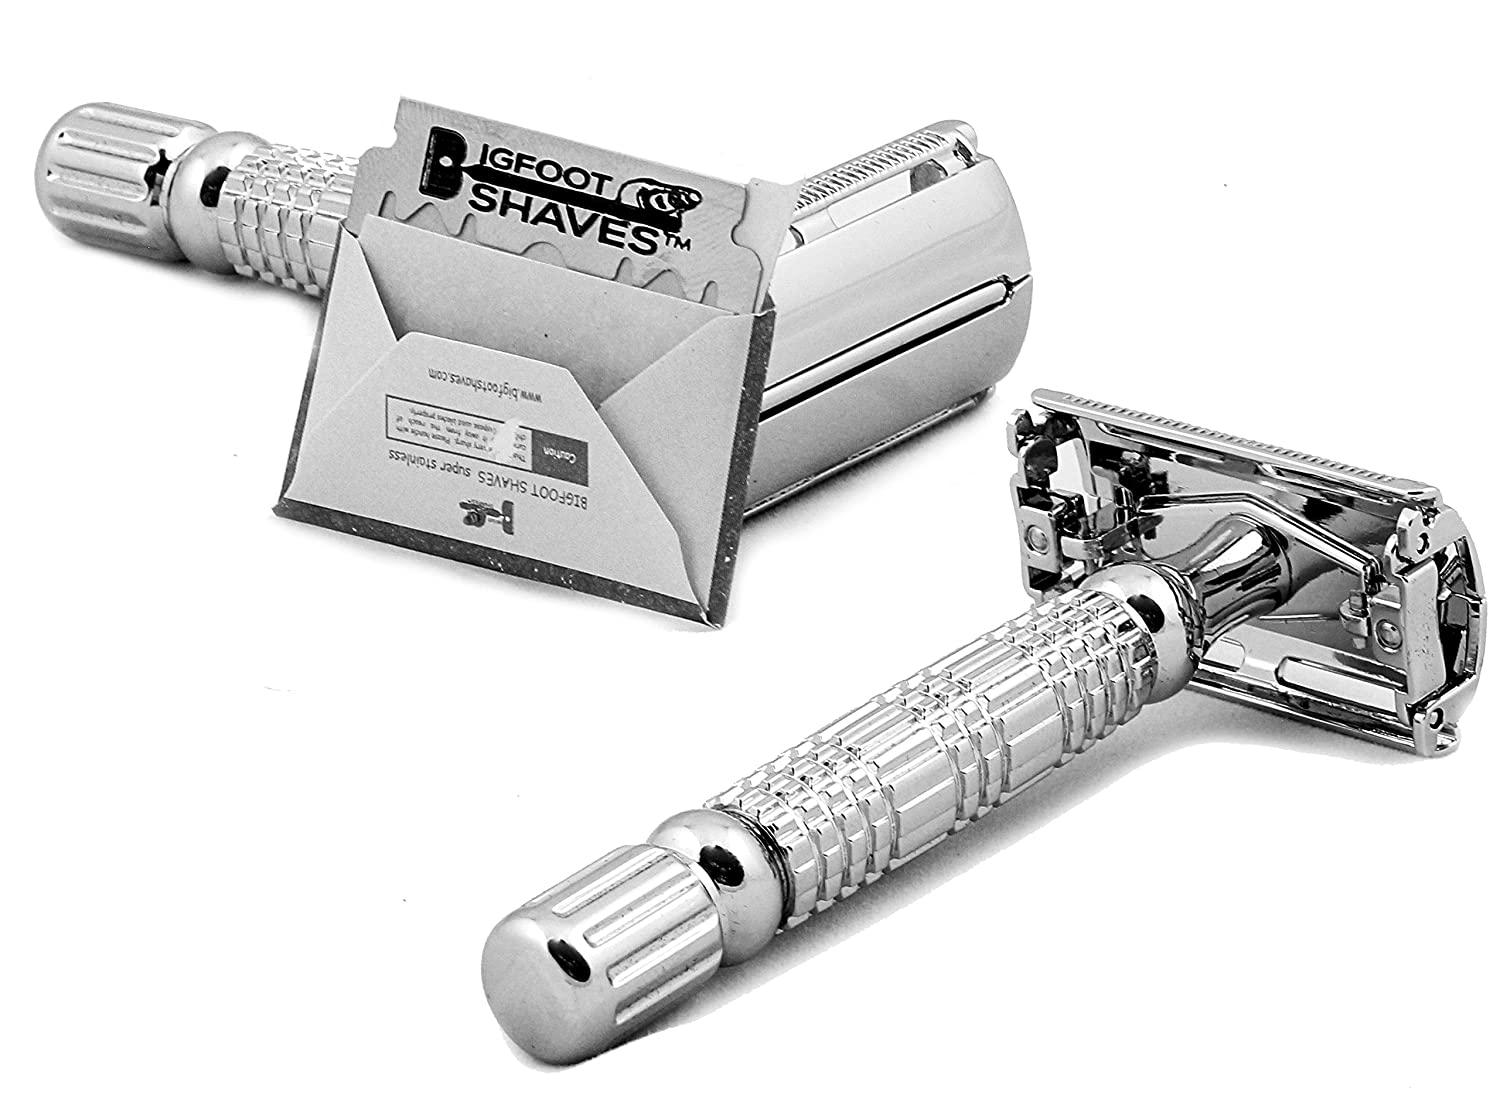 Bigfoot Shaves Butterfly Double Edge À✠DE- One Blade Safety Razor for Men + Blades + Carry Case - Prevents Razor Burn Nicks Cuts. Get a Smooth Shave Like Baby's Bottom. Look Sharp Feel Confident Conquer the Day